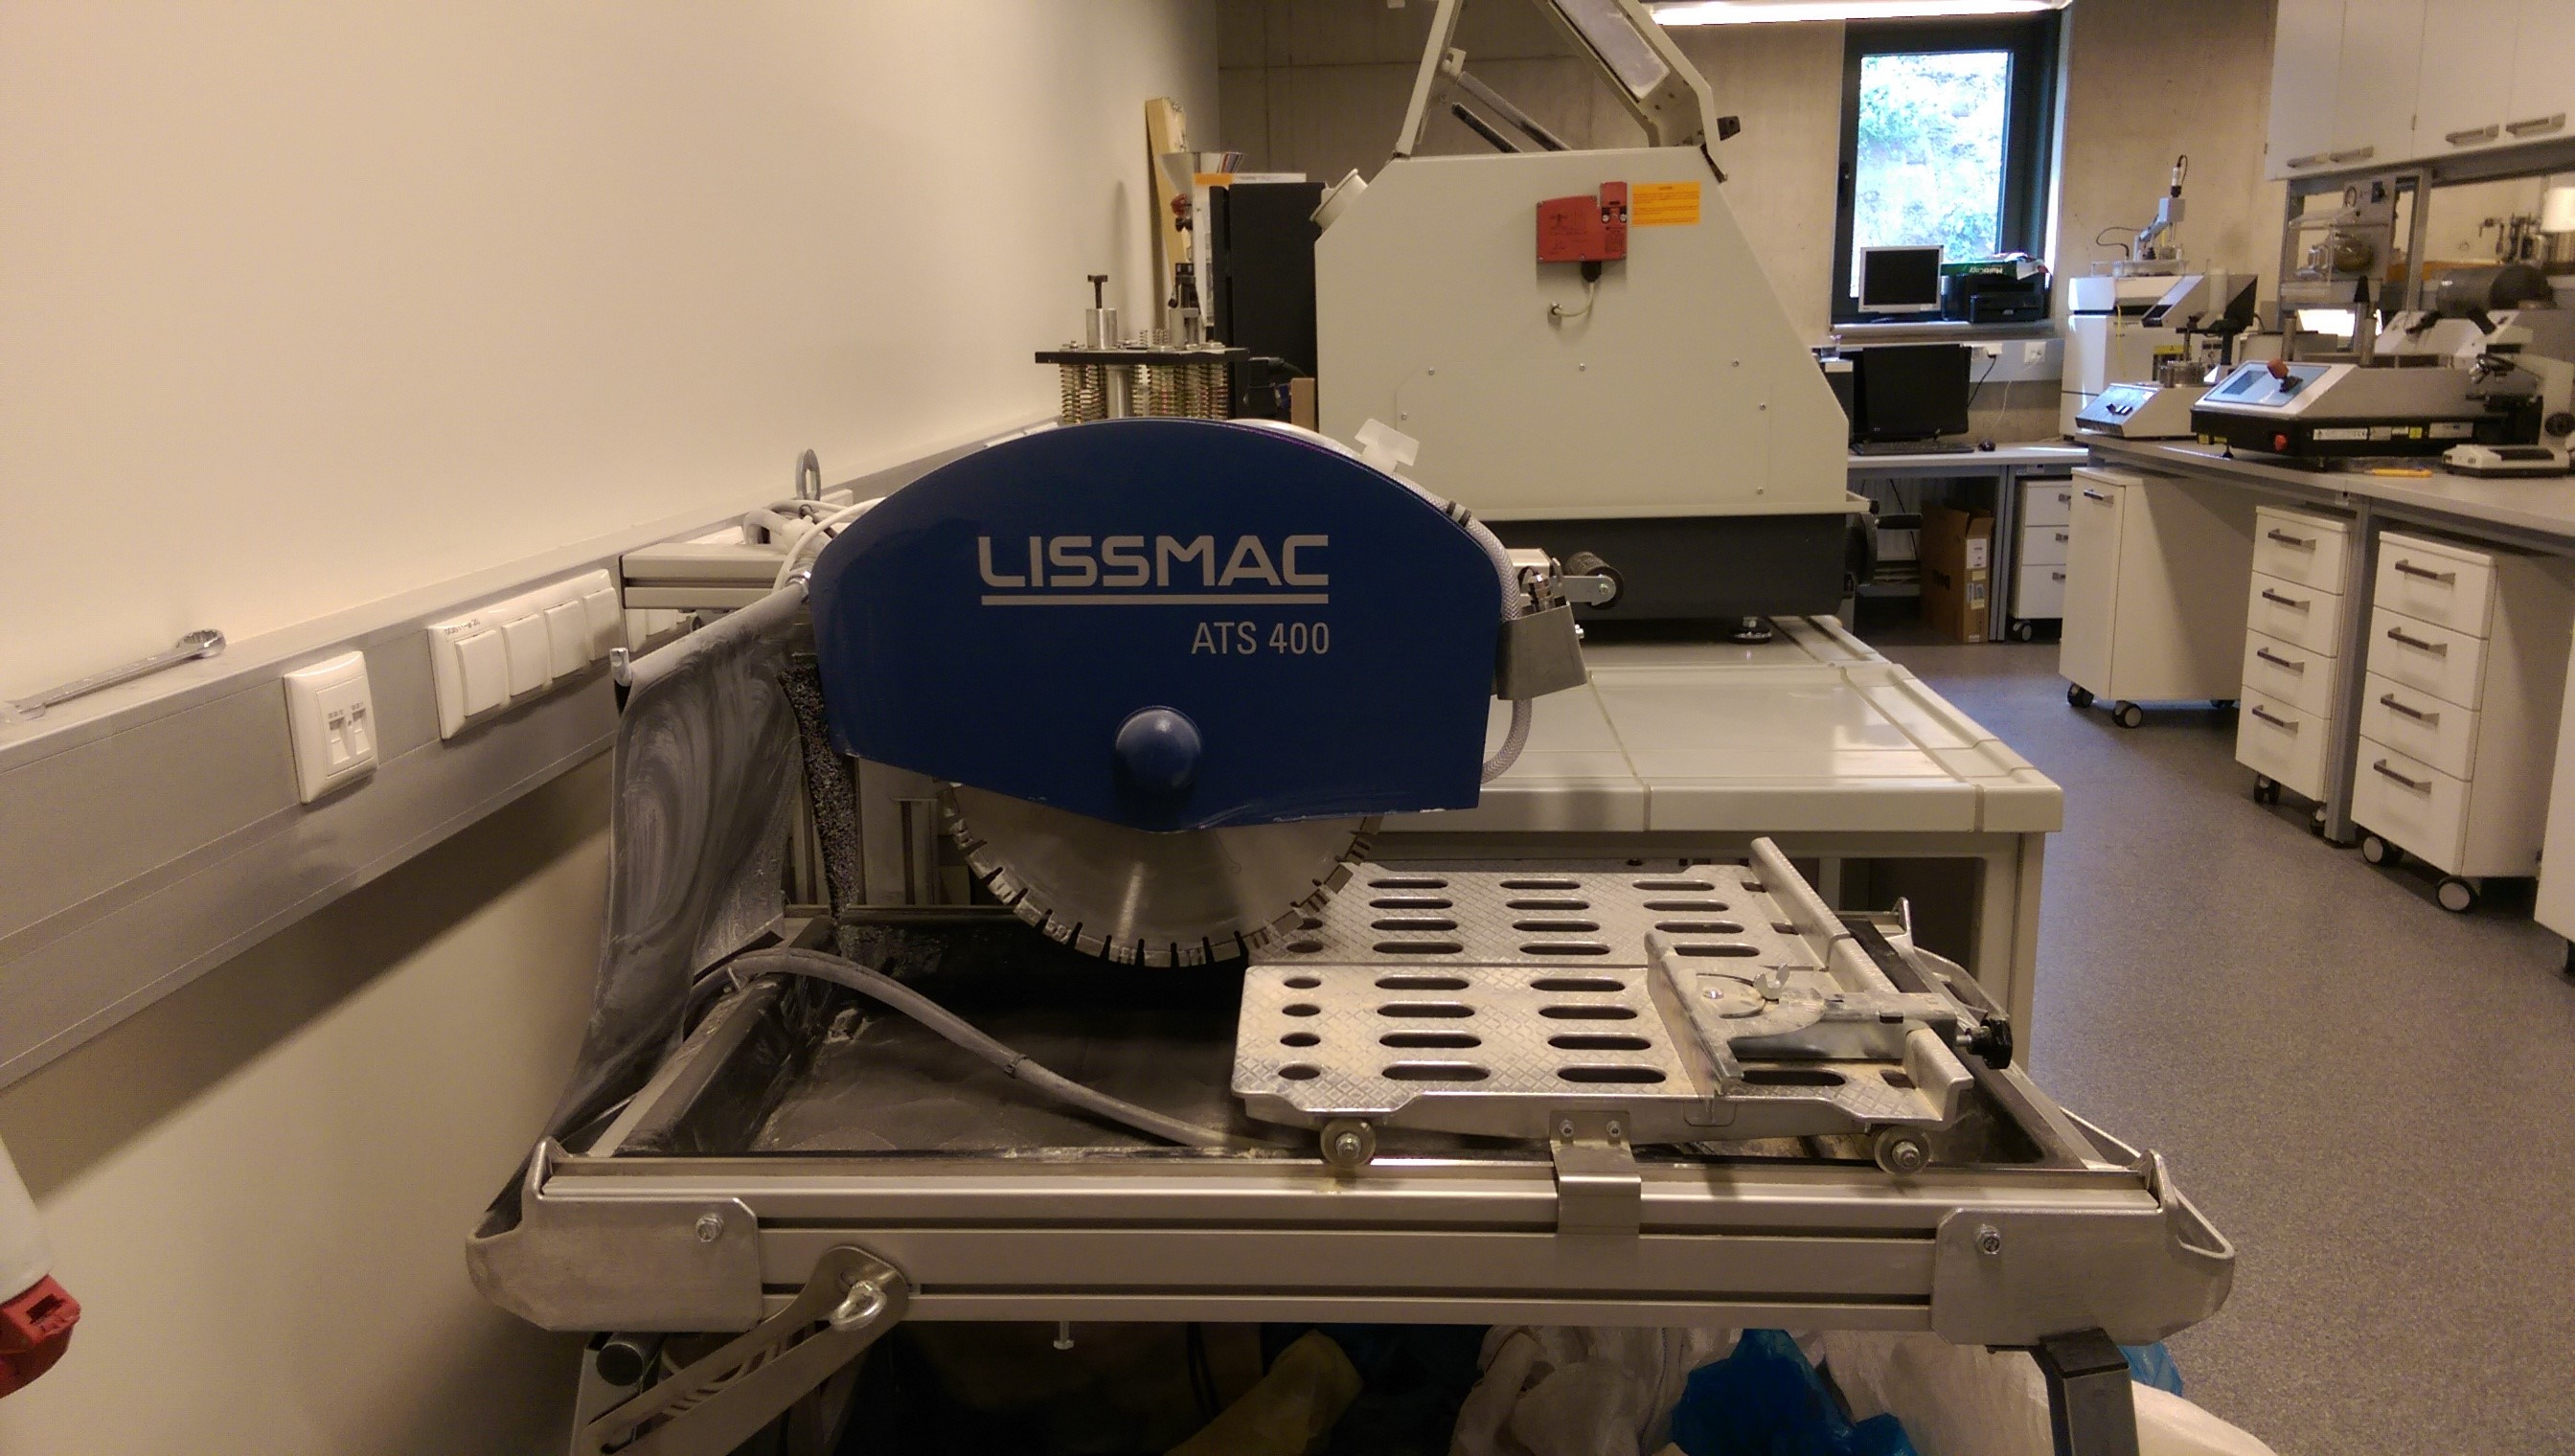 Large scale cutting table Lissmac ATS 400